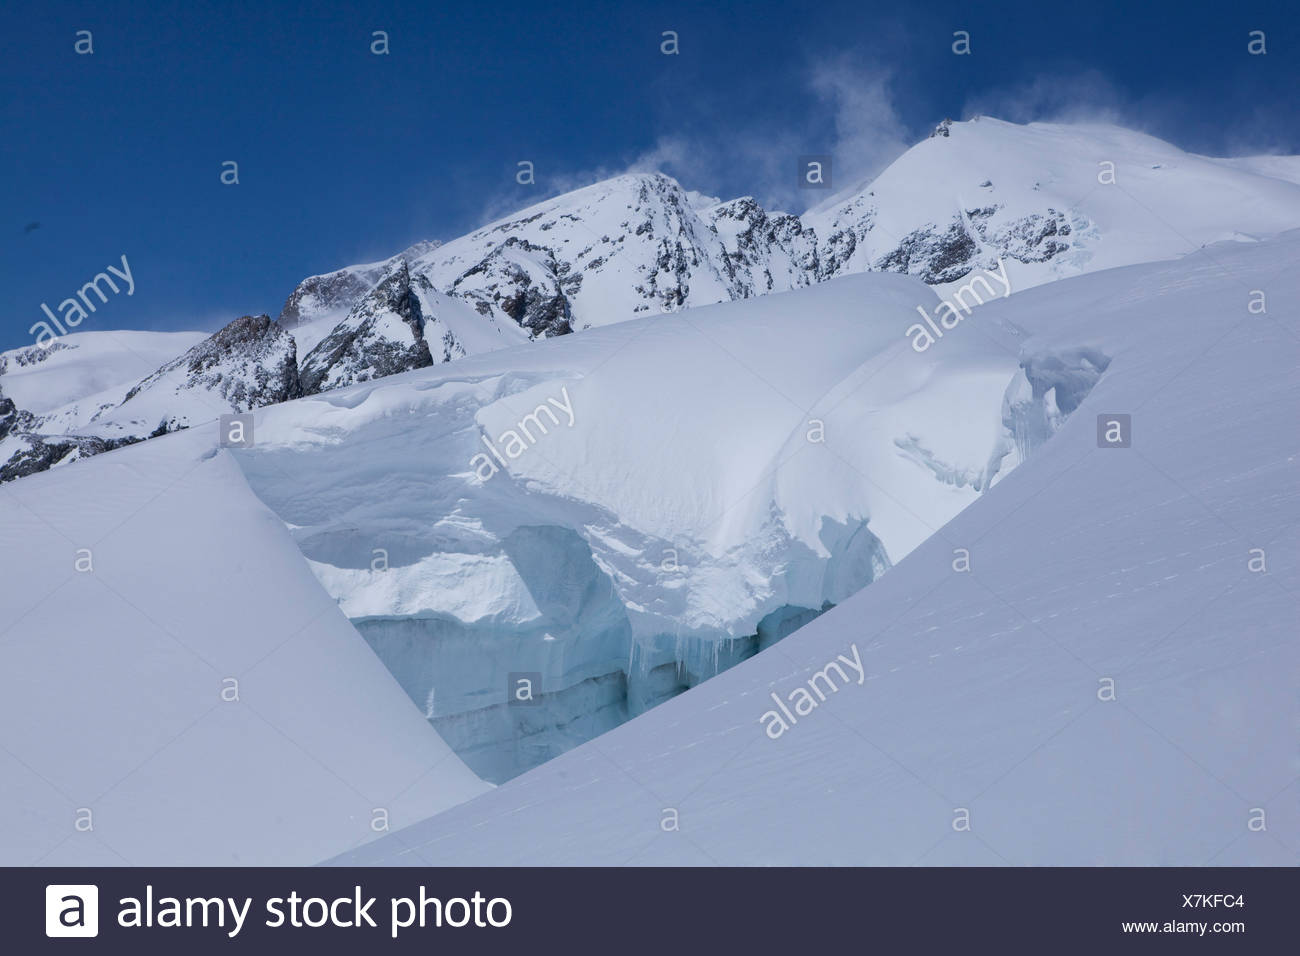 Mountain, mountains, glaciers, ice, moraine, canton, Valais, Aletsch, glacier, winter, scenery, landscape, Switzerland, Europe, - Stock Image